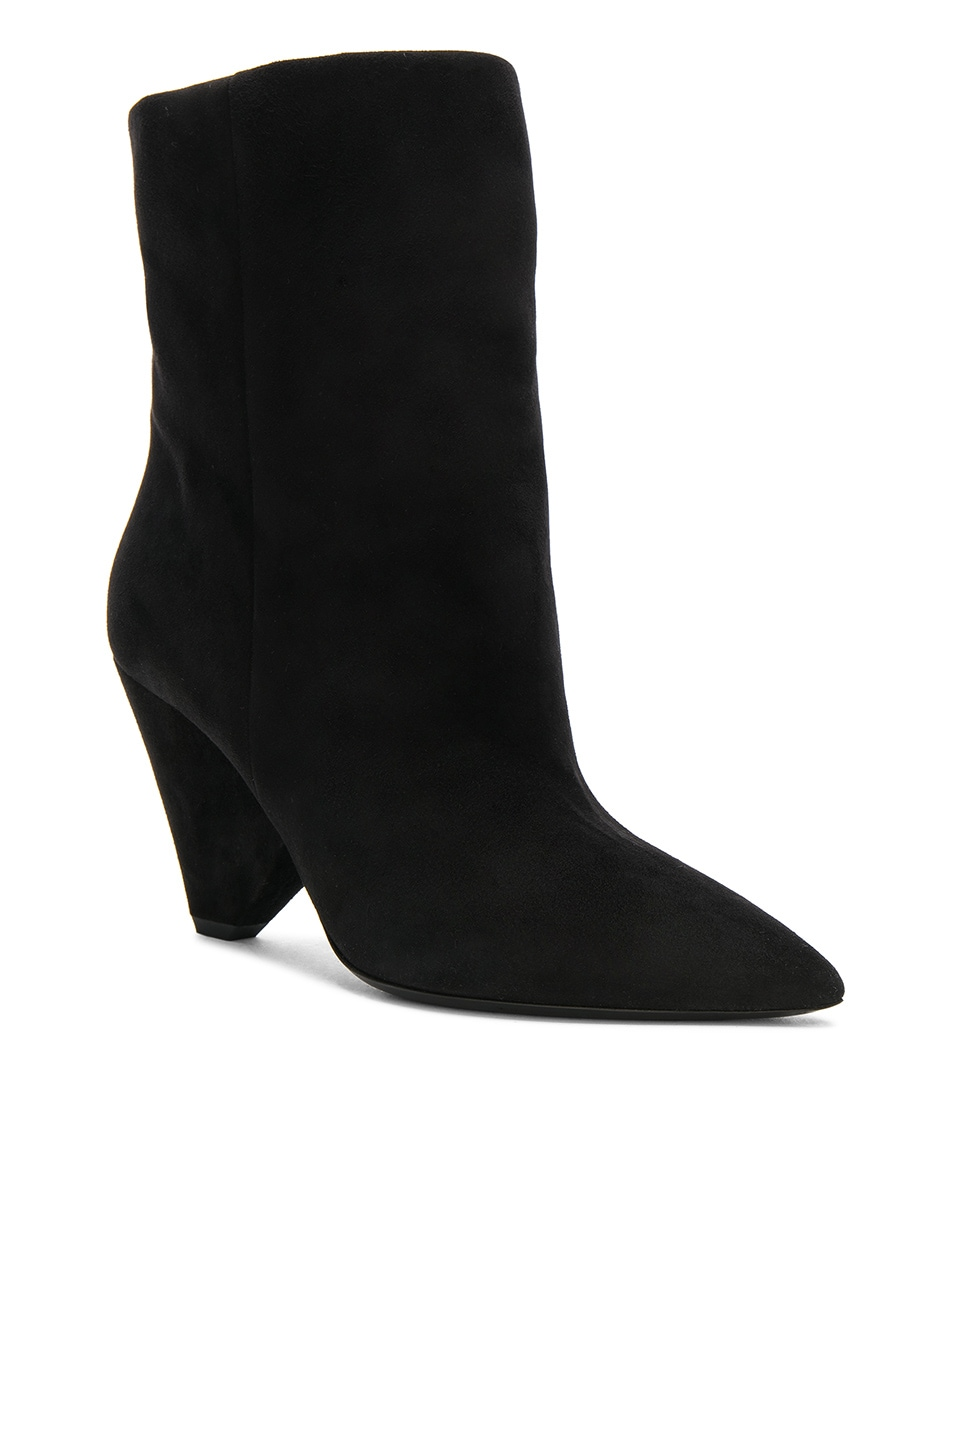 Image 2 of Saint Laurent Suede Niki Ankle Boots in Black